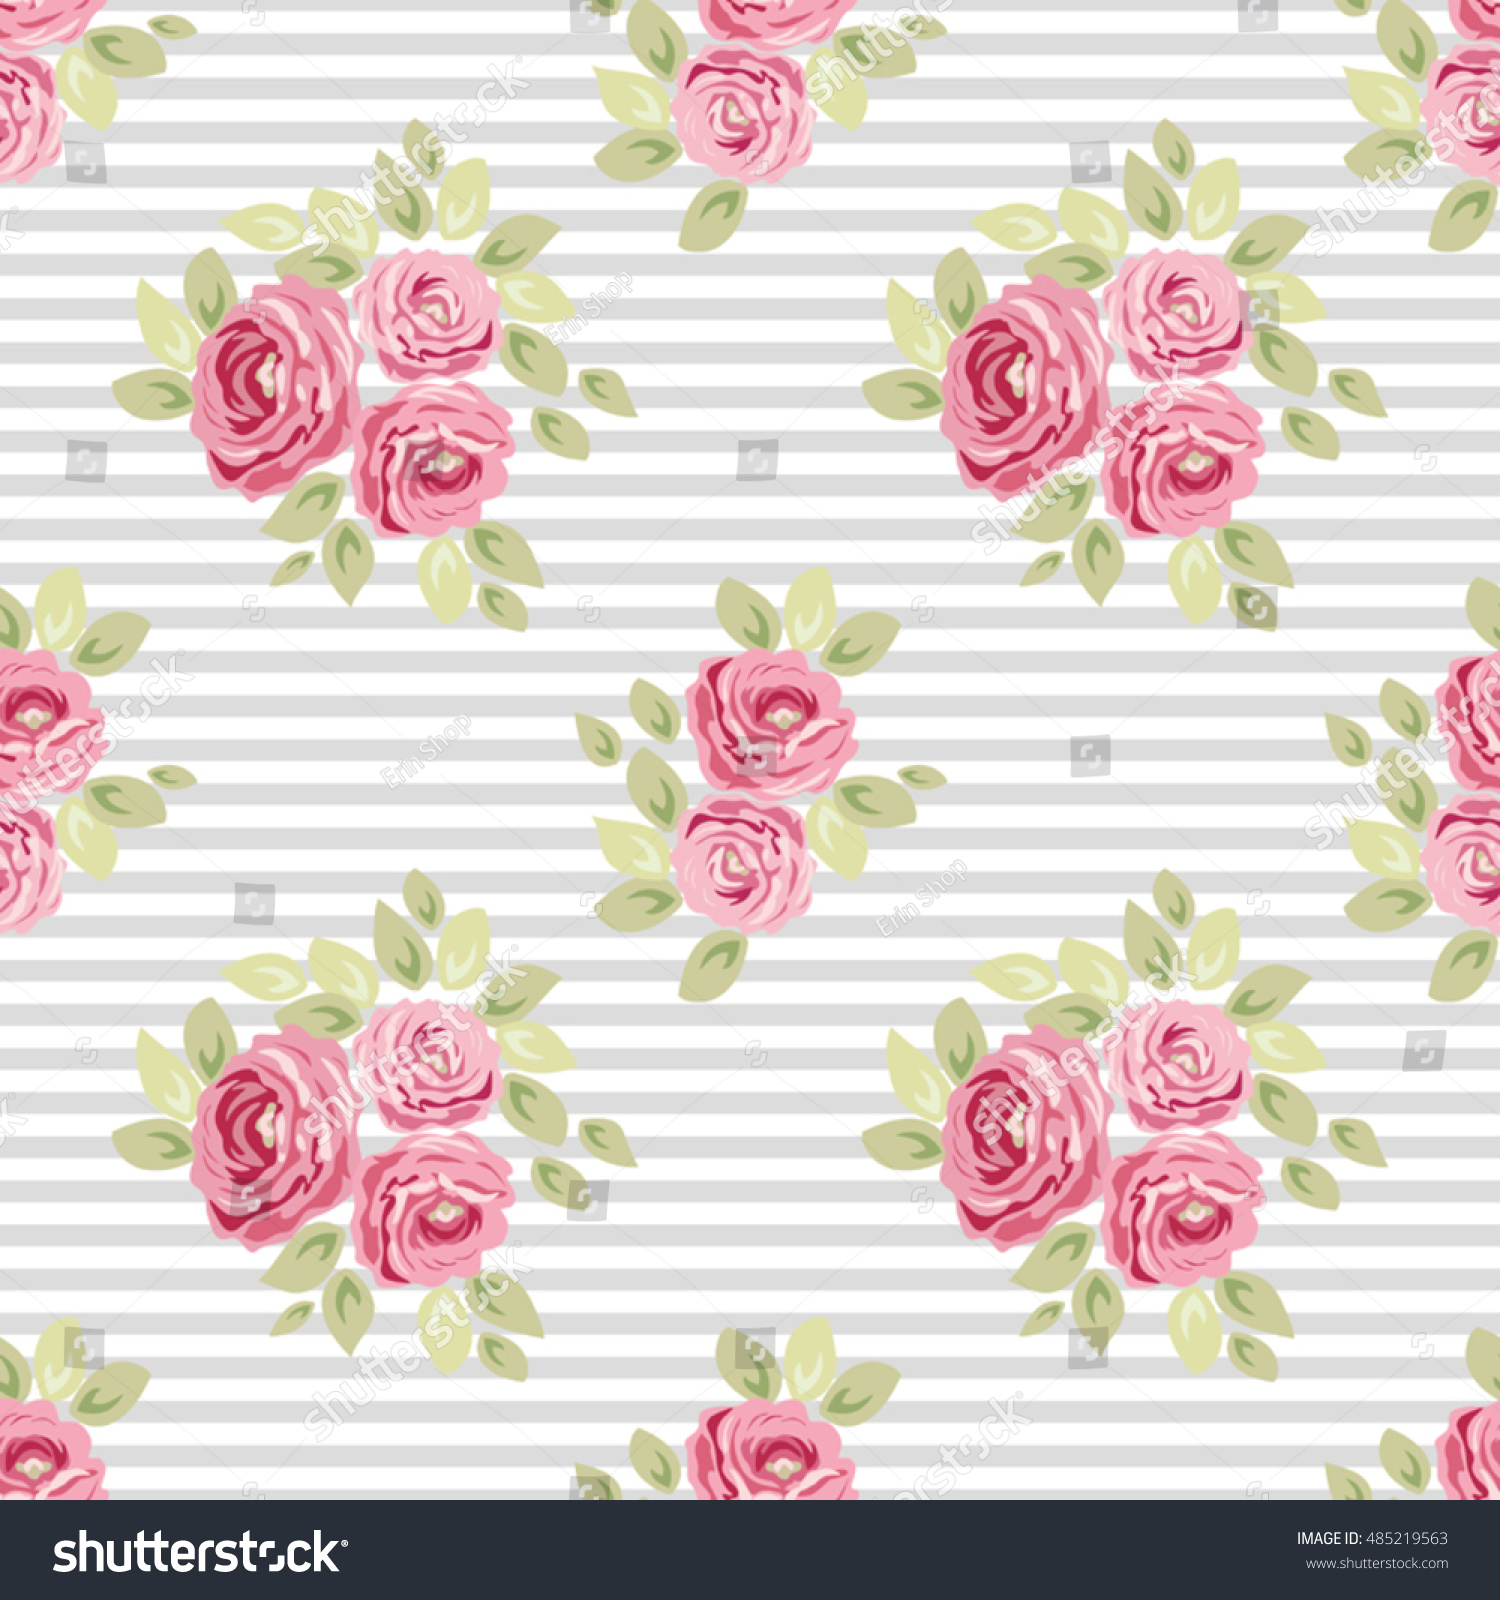 Cute Seamless Shabby Chic Pattern With Roses And Stripes Ideal For Kitchen Textile Or Bed Linen